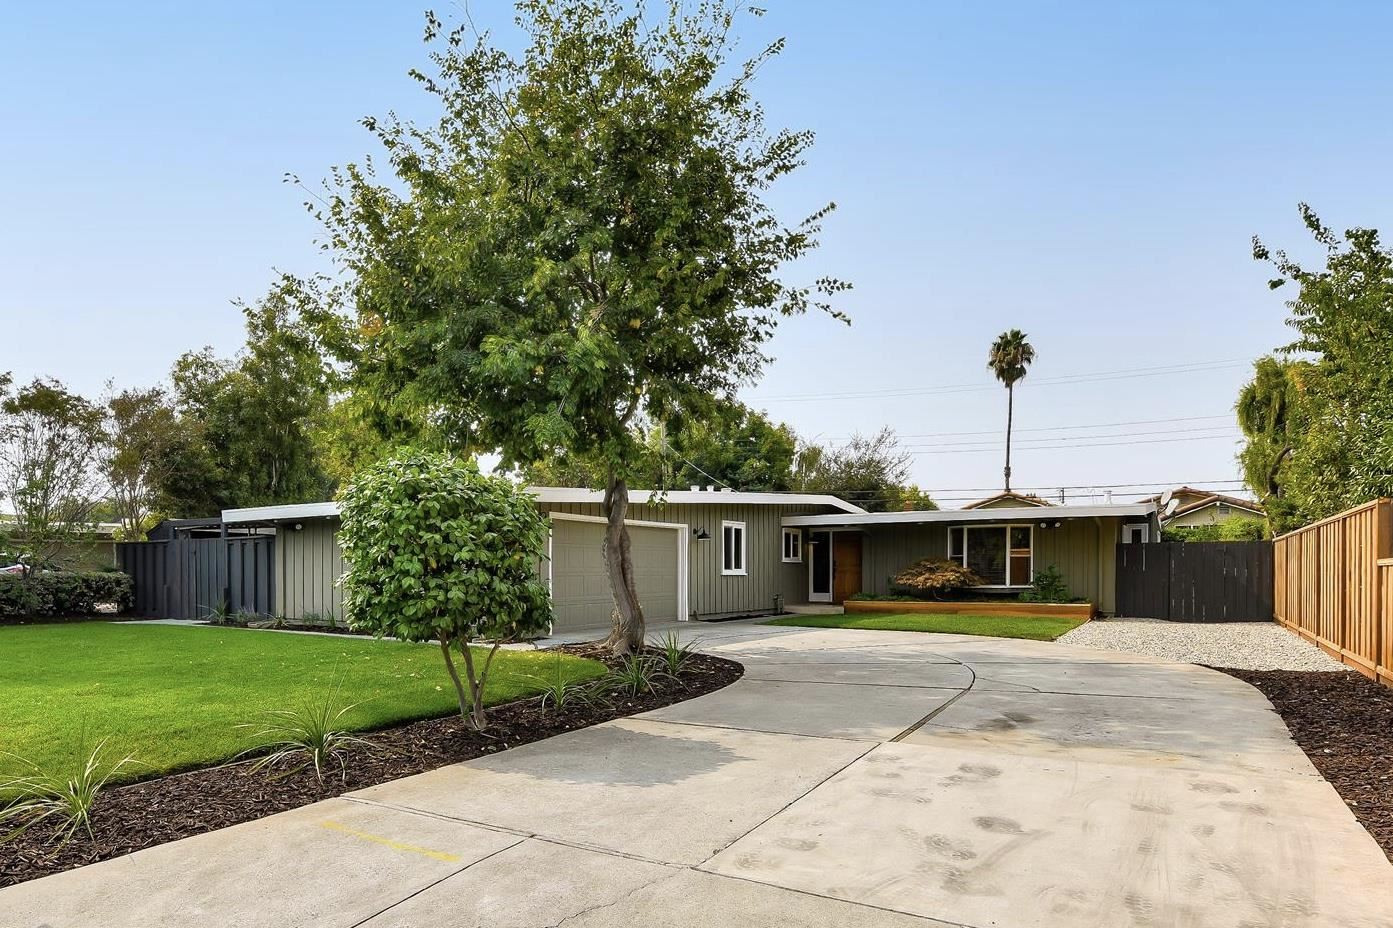 Photo for 413 Cloverdale LN, CAMPBELL, CA 95008 (MLS # ML81813478)